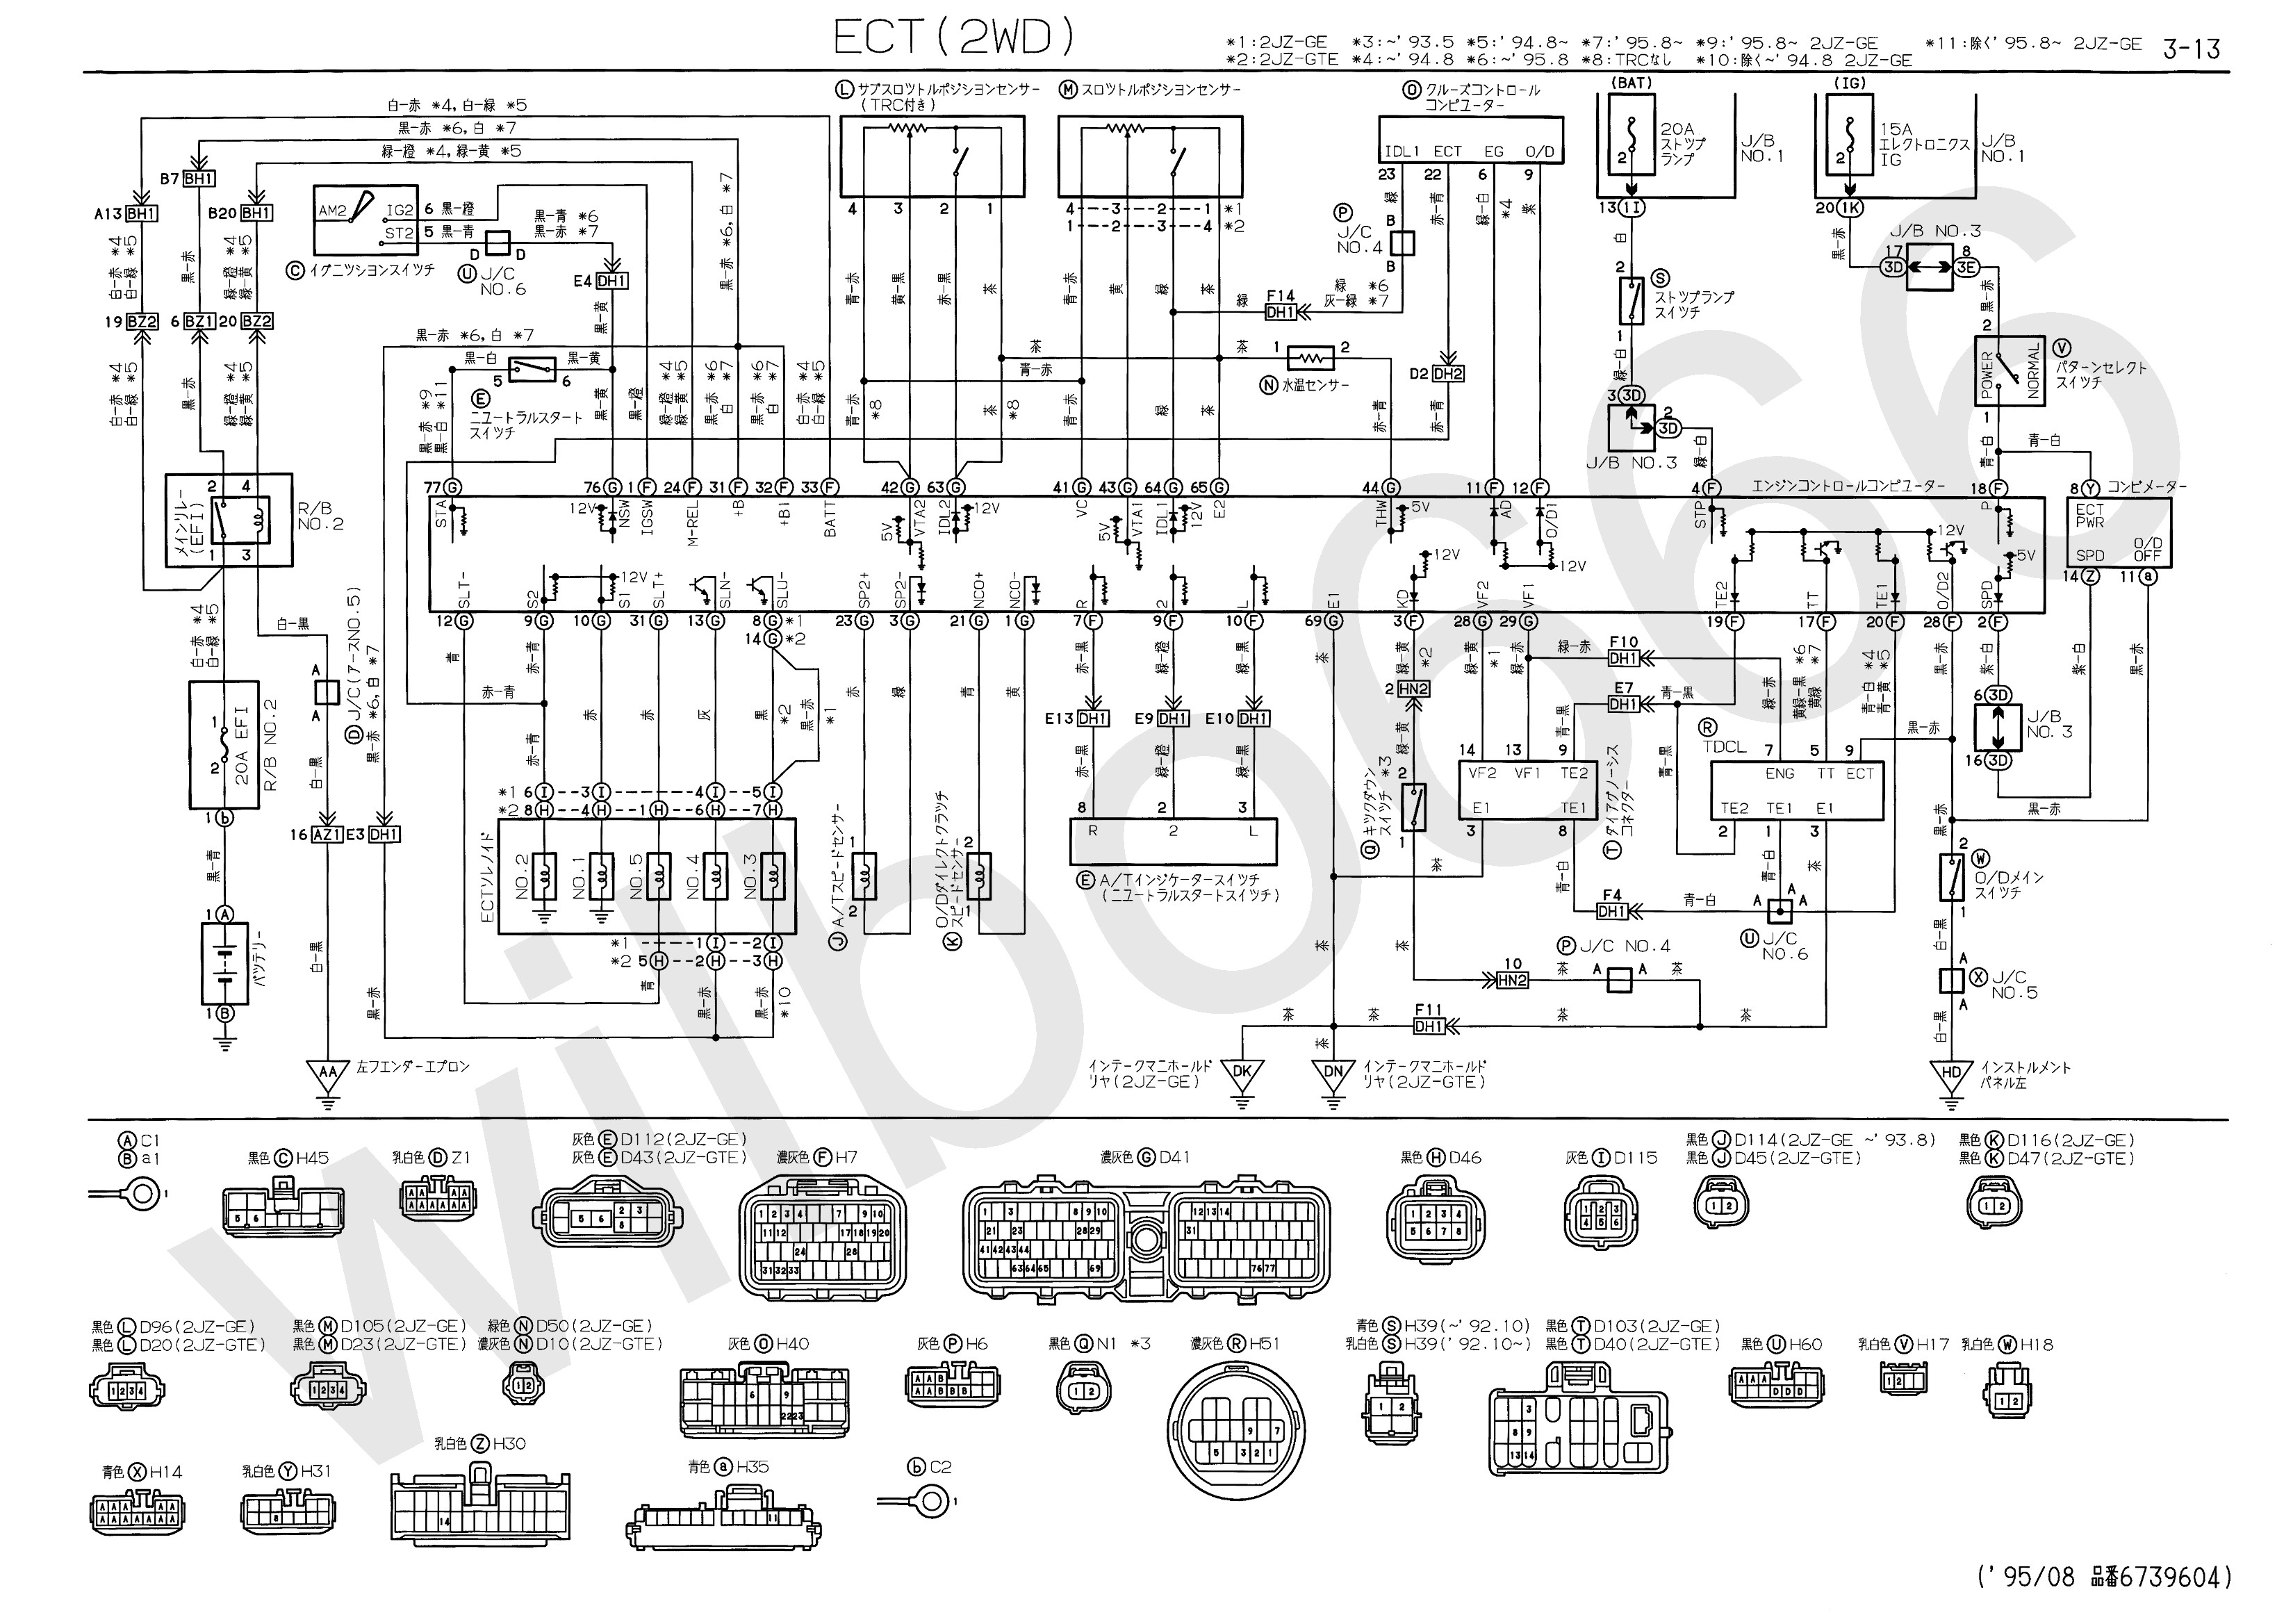 05 Dodge Ram Radio Wiring | Wiring Diagram Database